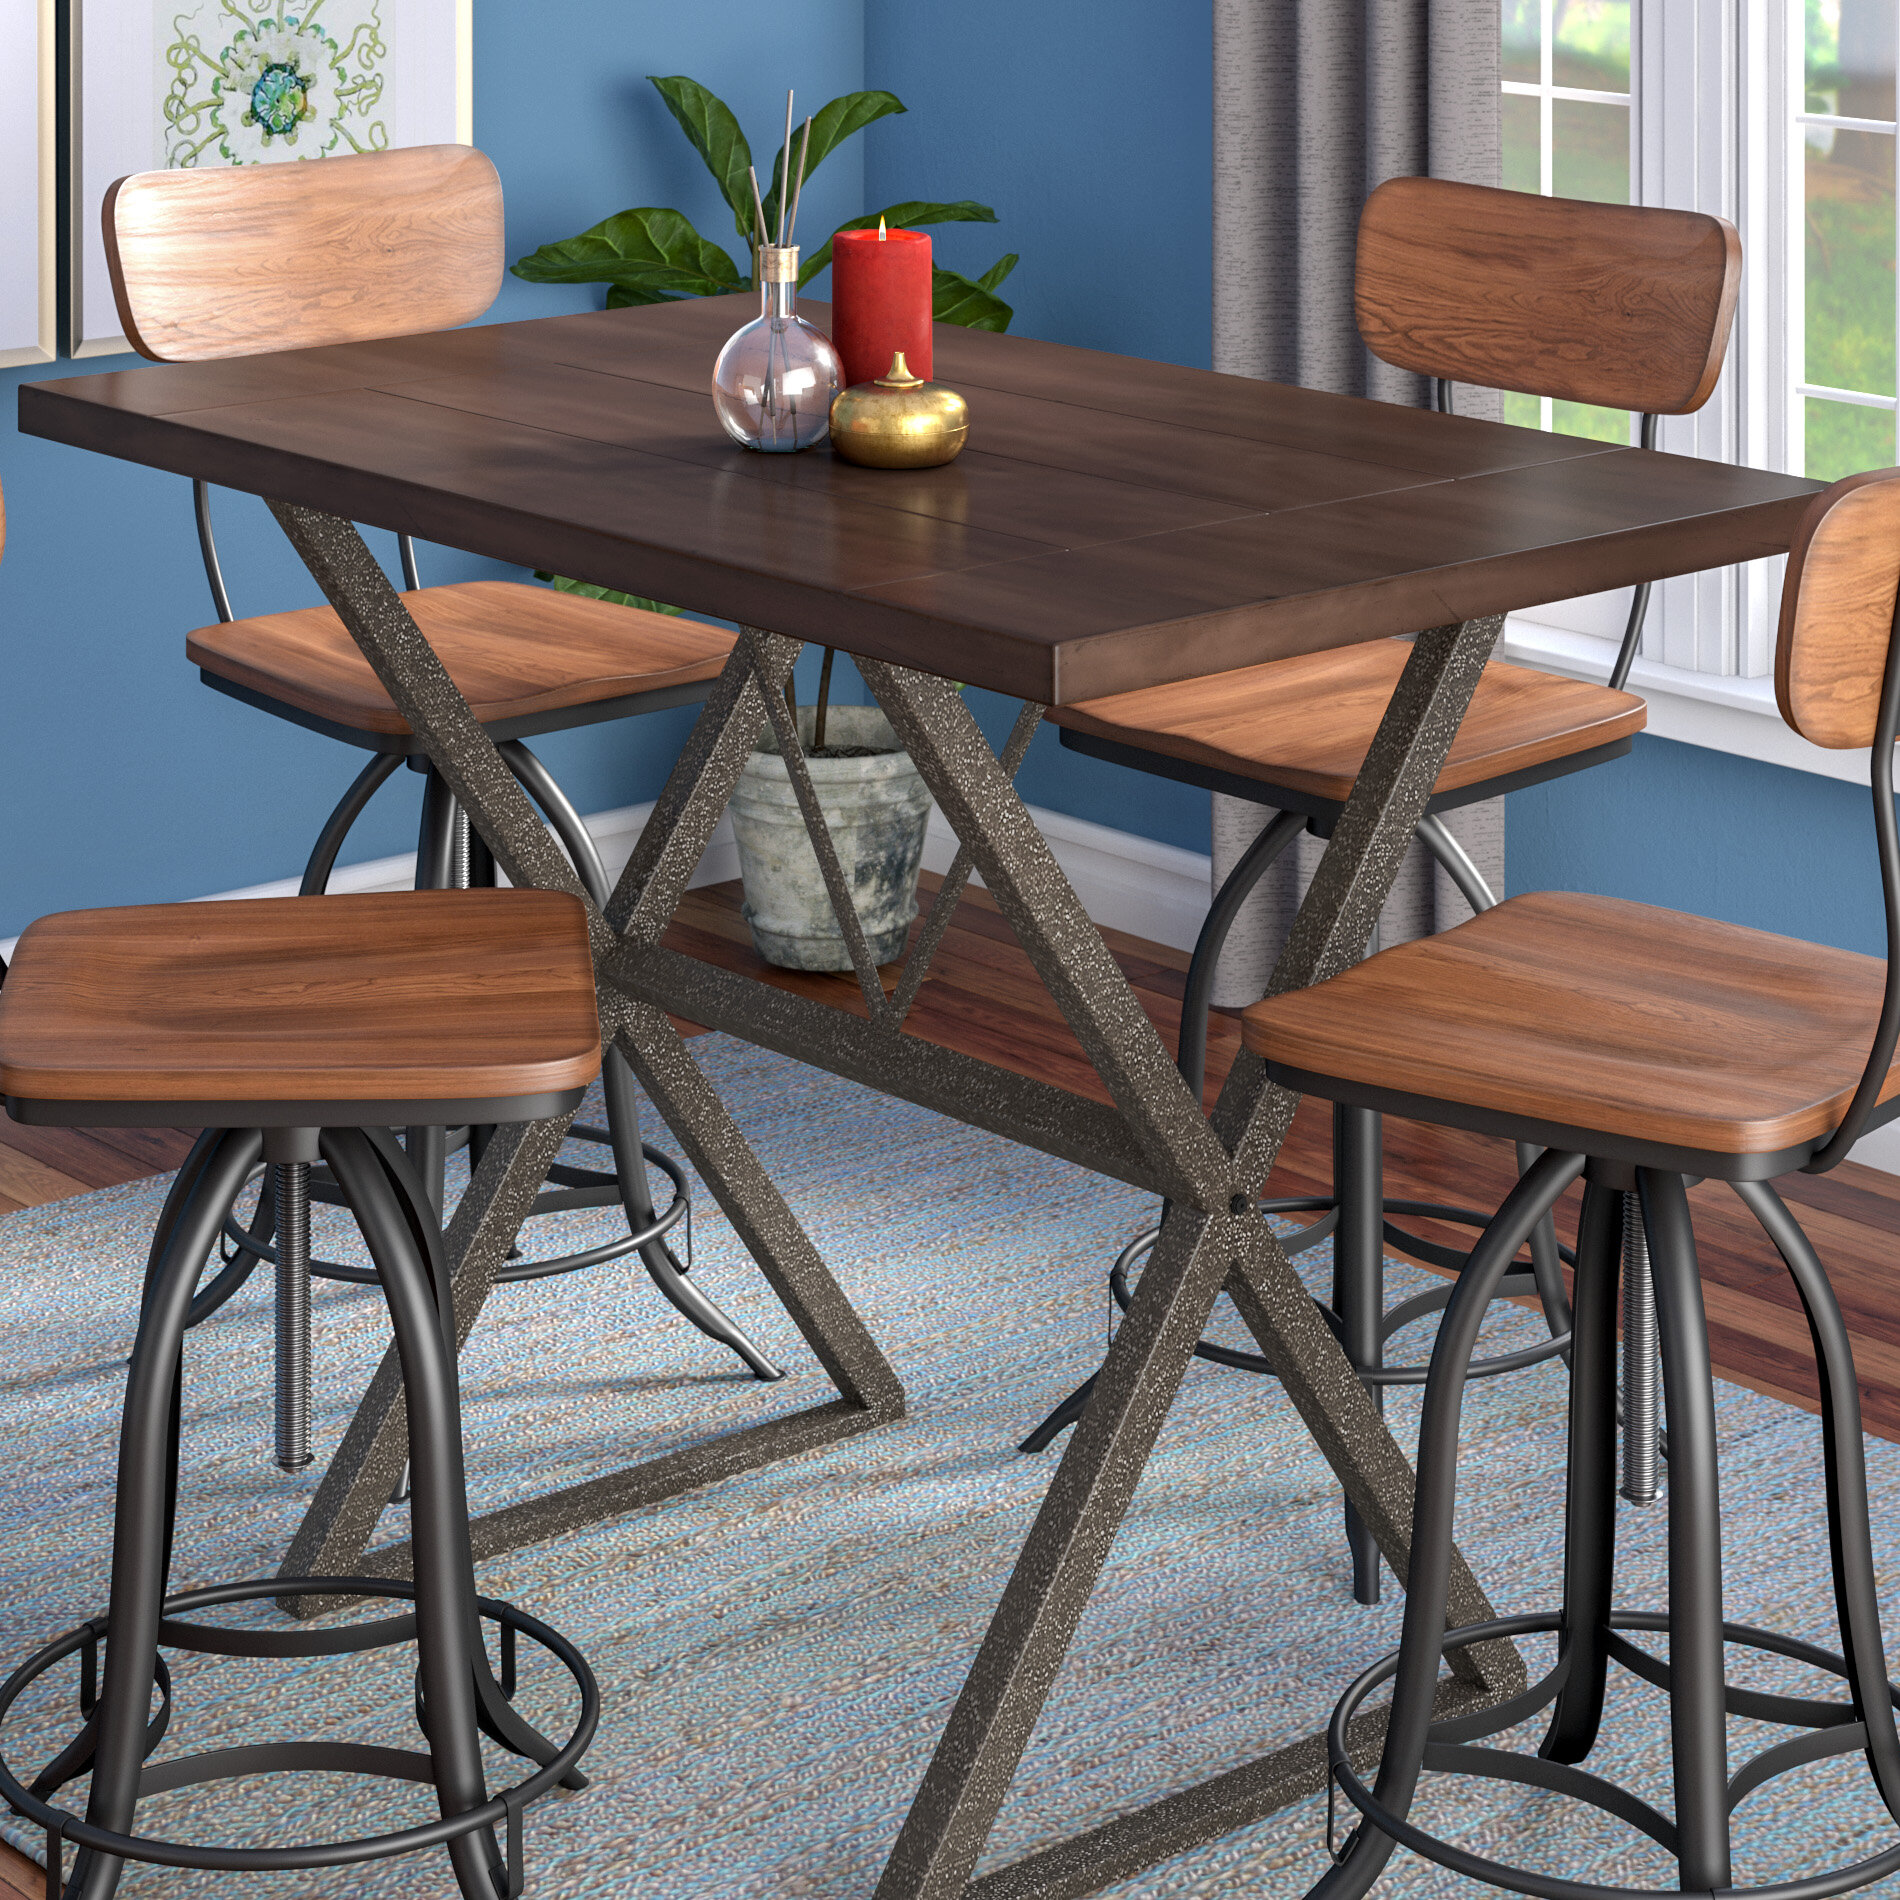 T Austin Design Red Cliff Counter Height Dining Table Reviews Wayfair